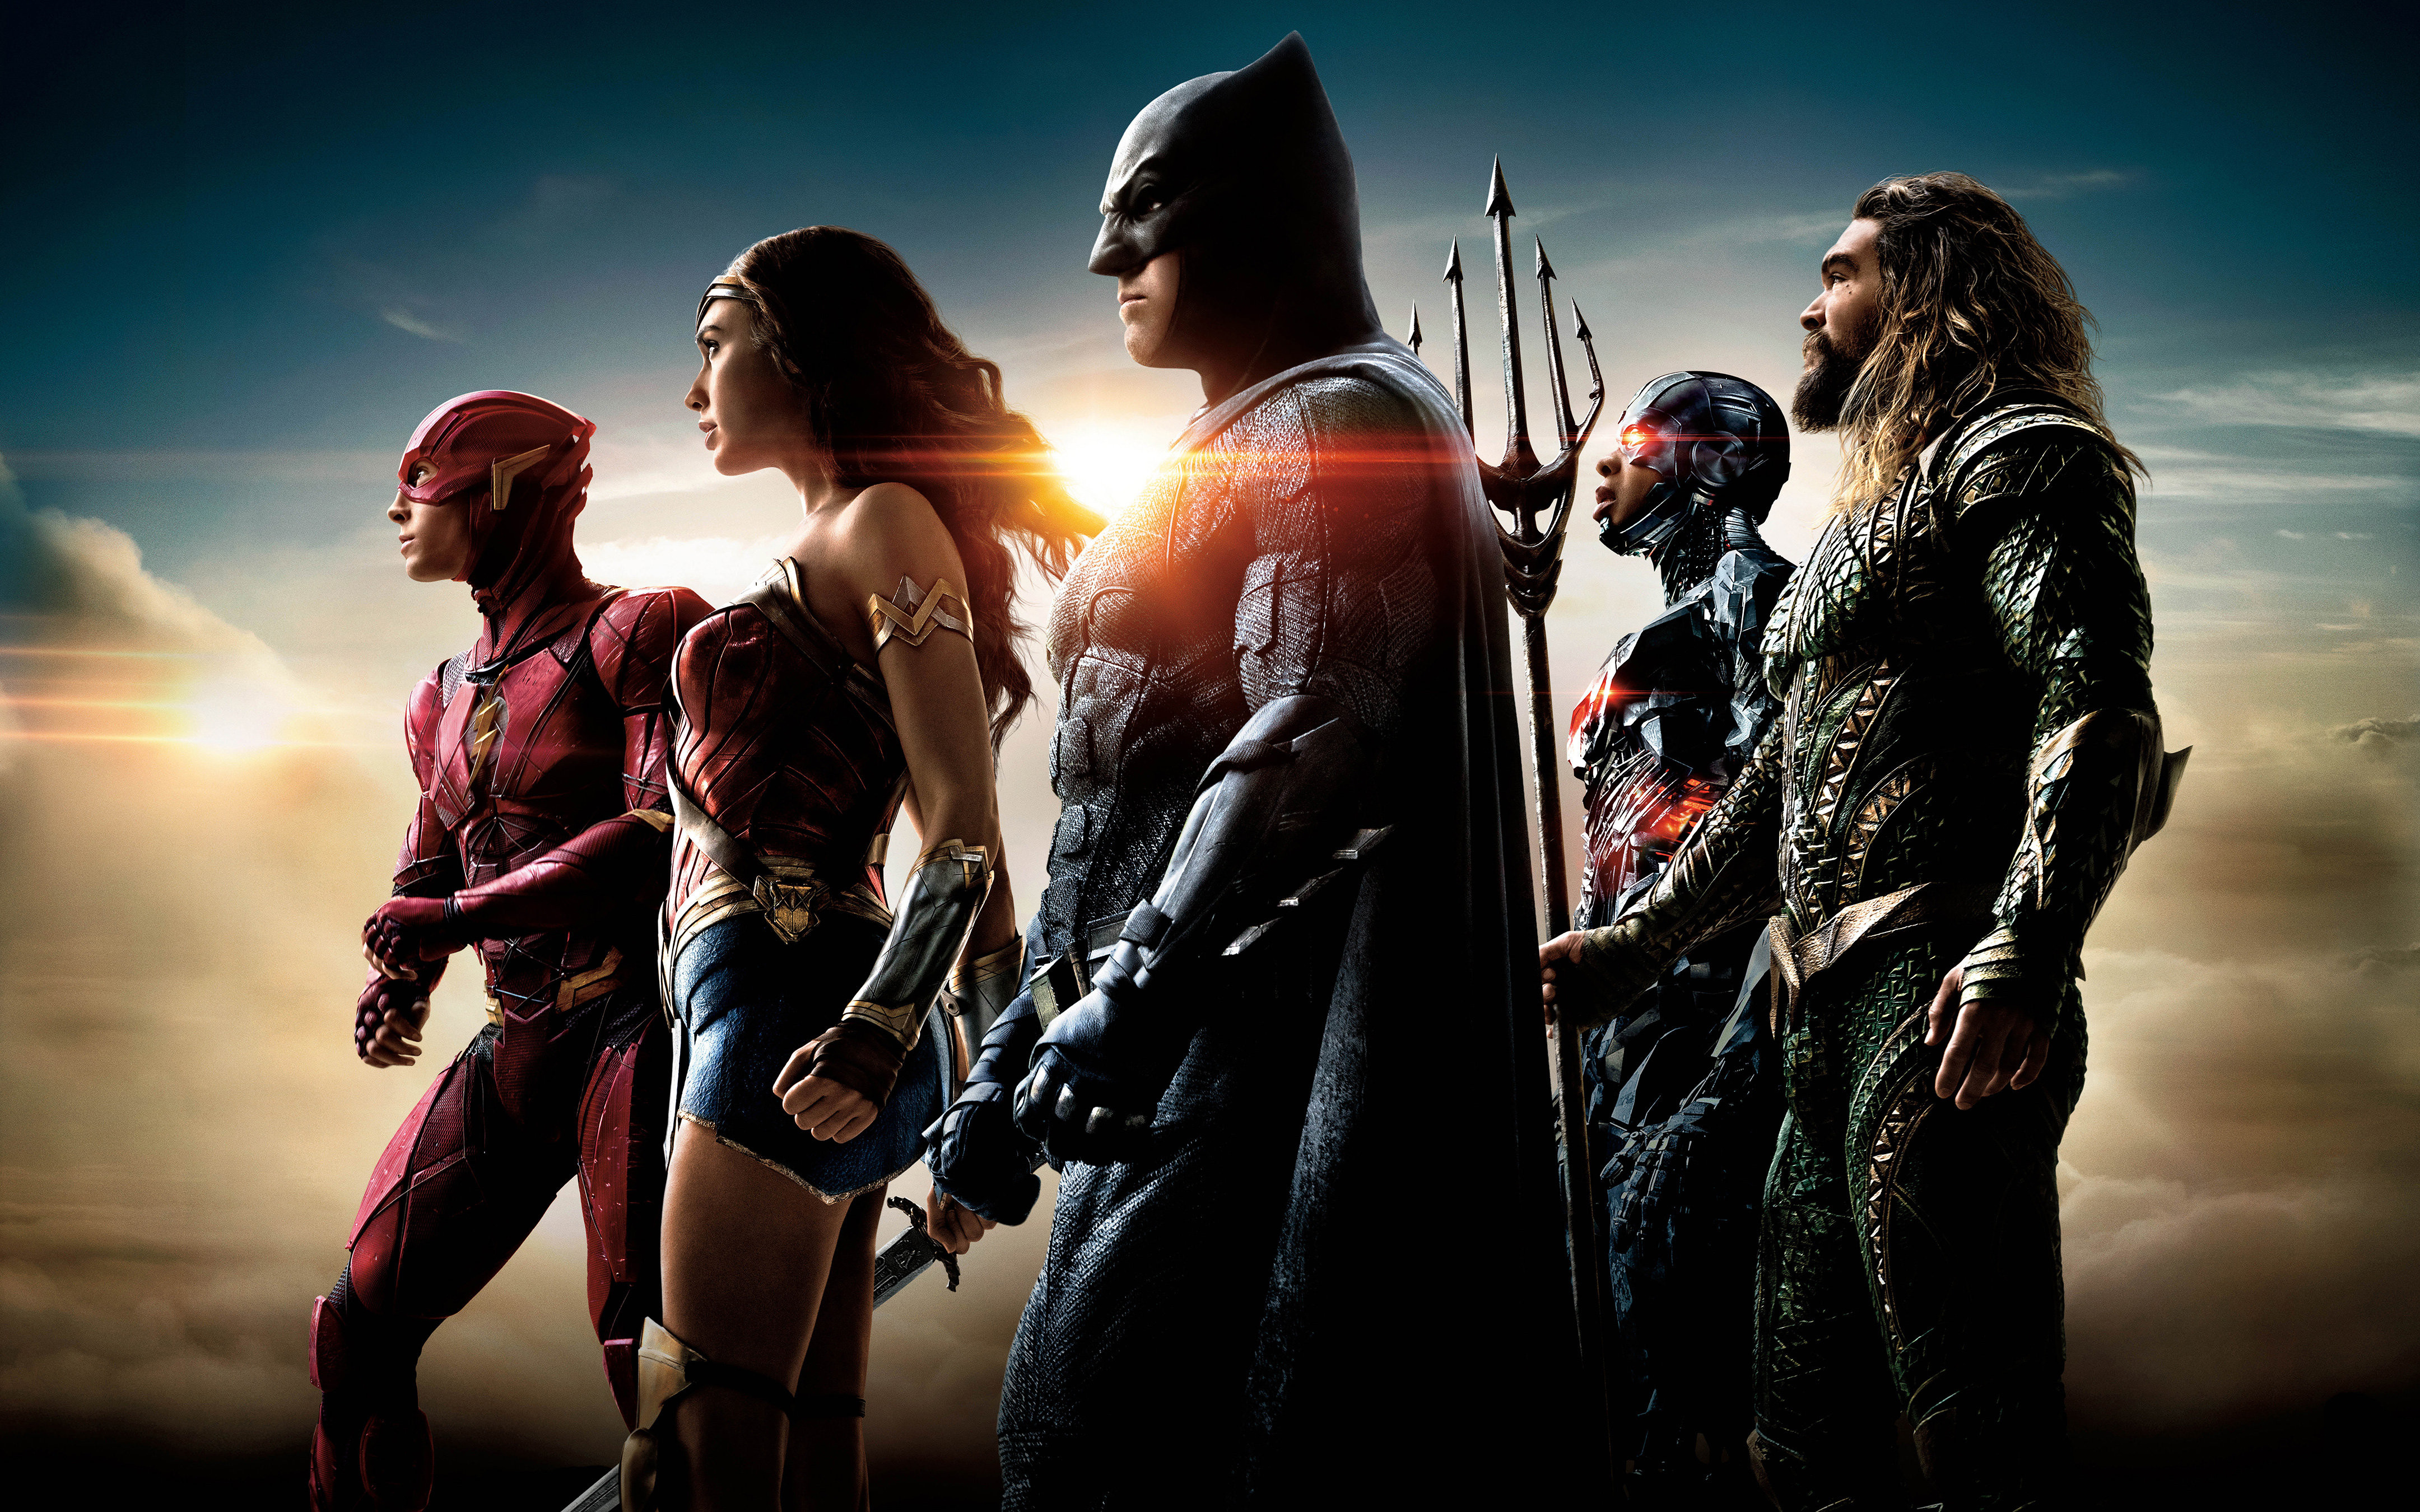 Download wallpaper from movie Justice League (2017) with tags ...